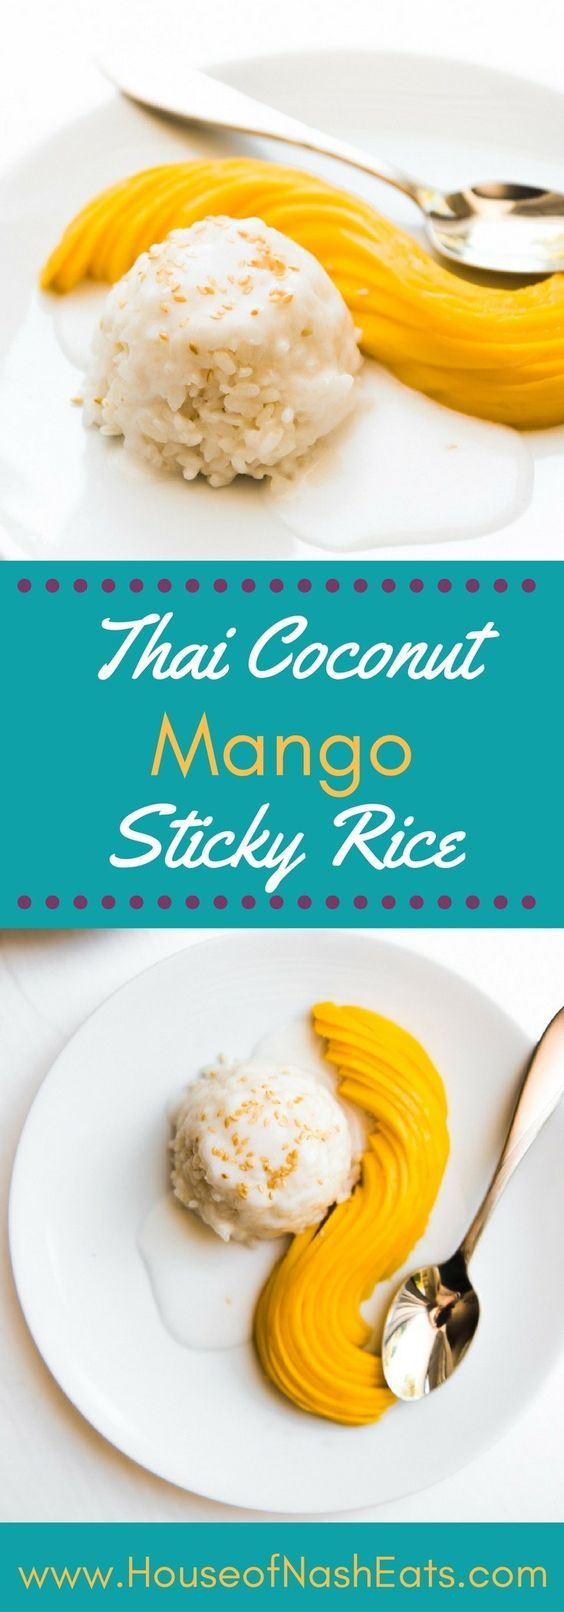 19 best Rice images on Pinterest | Recipes, Coconut sticky rice and ...